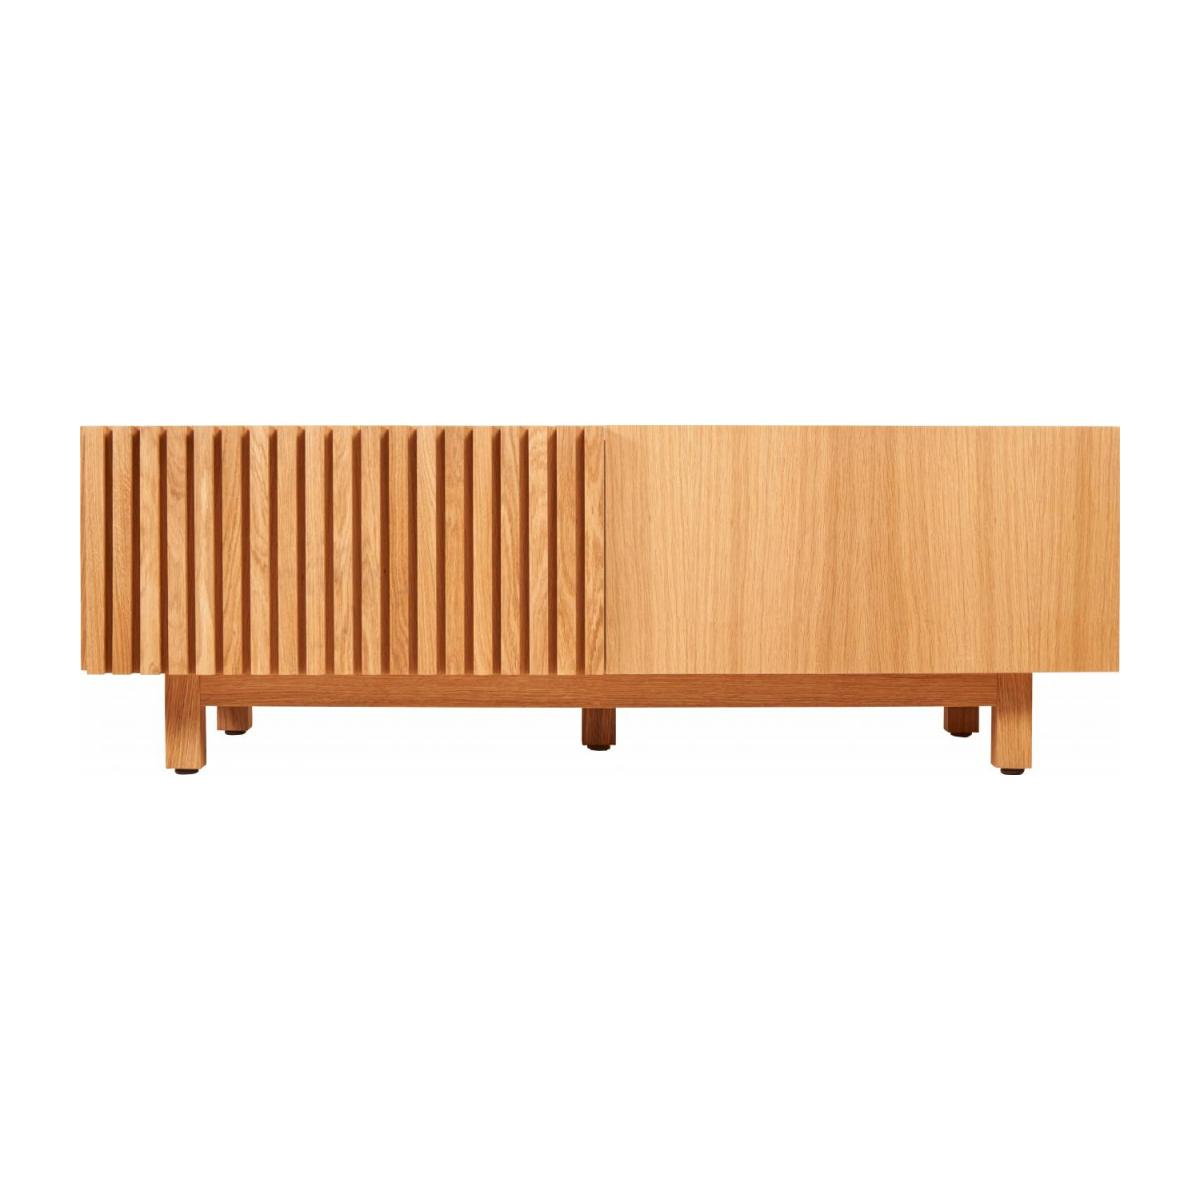 Audio video oak stand n°4